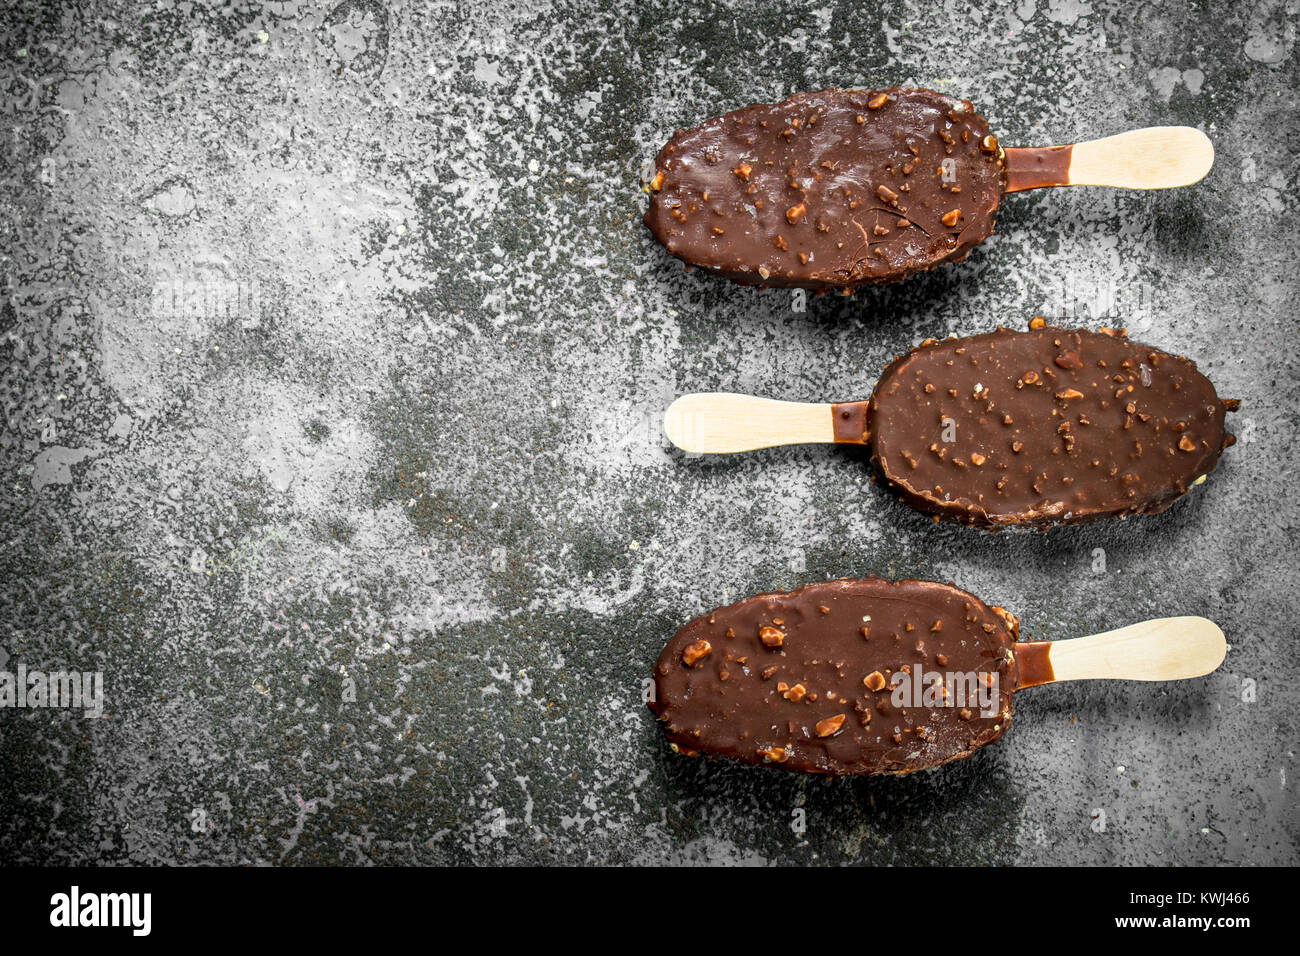 Fresh ice cream on a stick in chocolate with nuts. On a rustic background. Stock Photo